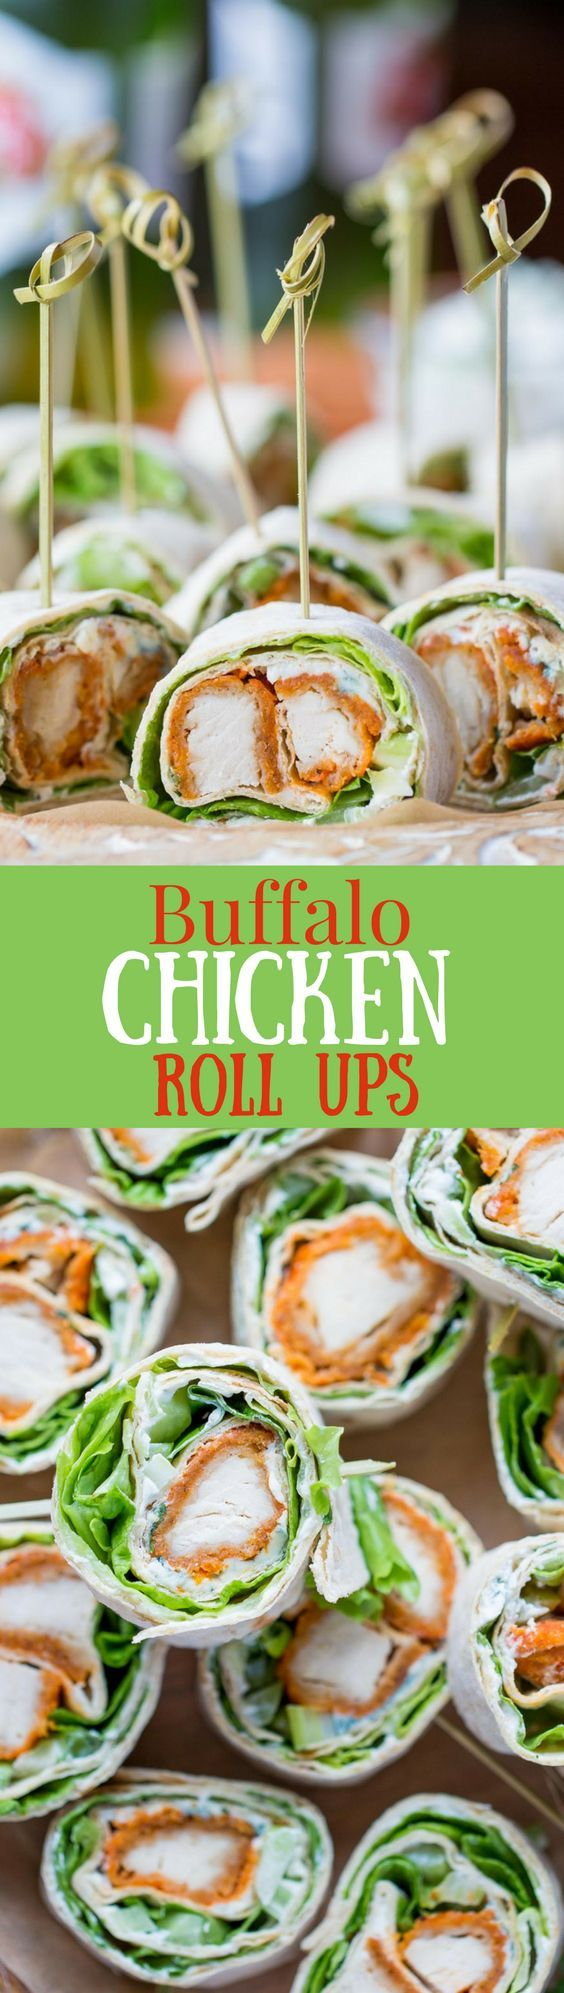 Buffalo Chicken Roll Up Appetizers ~ made with all-natural frozen chicken tenders tossed in hot sauce, then rolled up with a homemade blue cheese dip, celery, and crisp lettuce. blue cheese | buffalo chicken | appetizer | roll ups | wraps | http://www.savingdessert.com